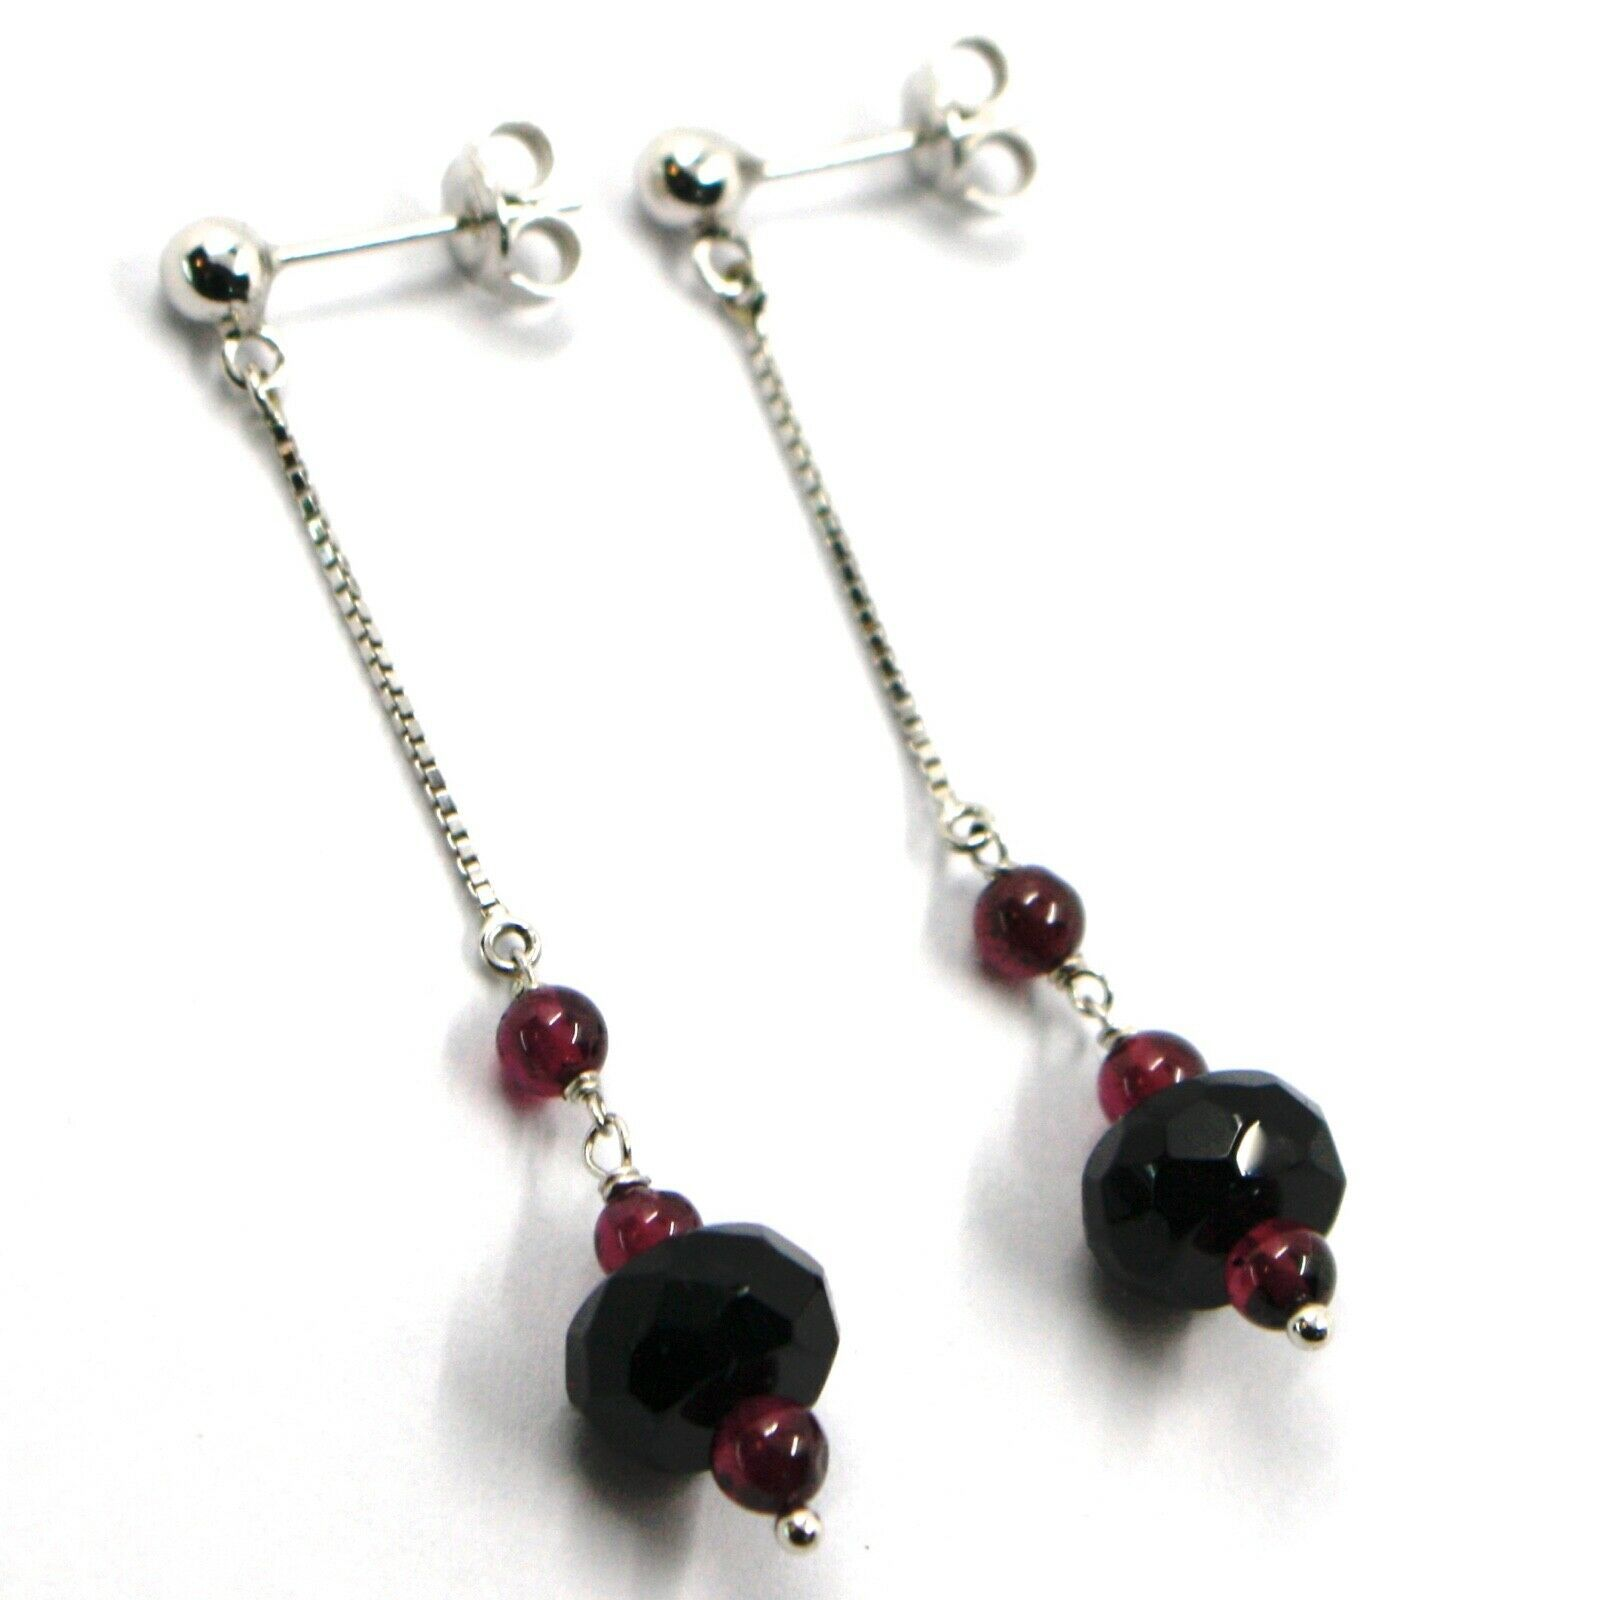 18K WHITE GOLD PENDANT EARRINGS, ONYX DISC, GARNET SPHERE, LENGTH 2.2 INCHES